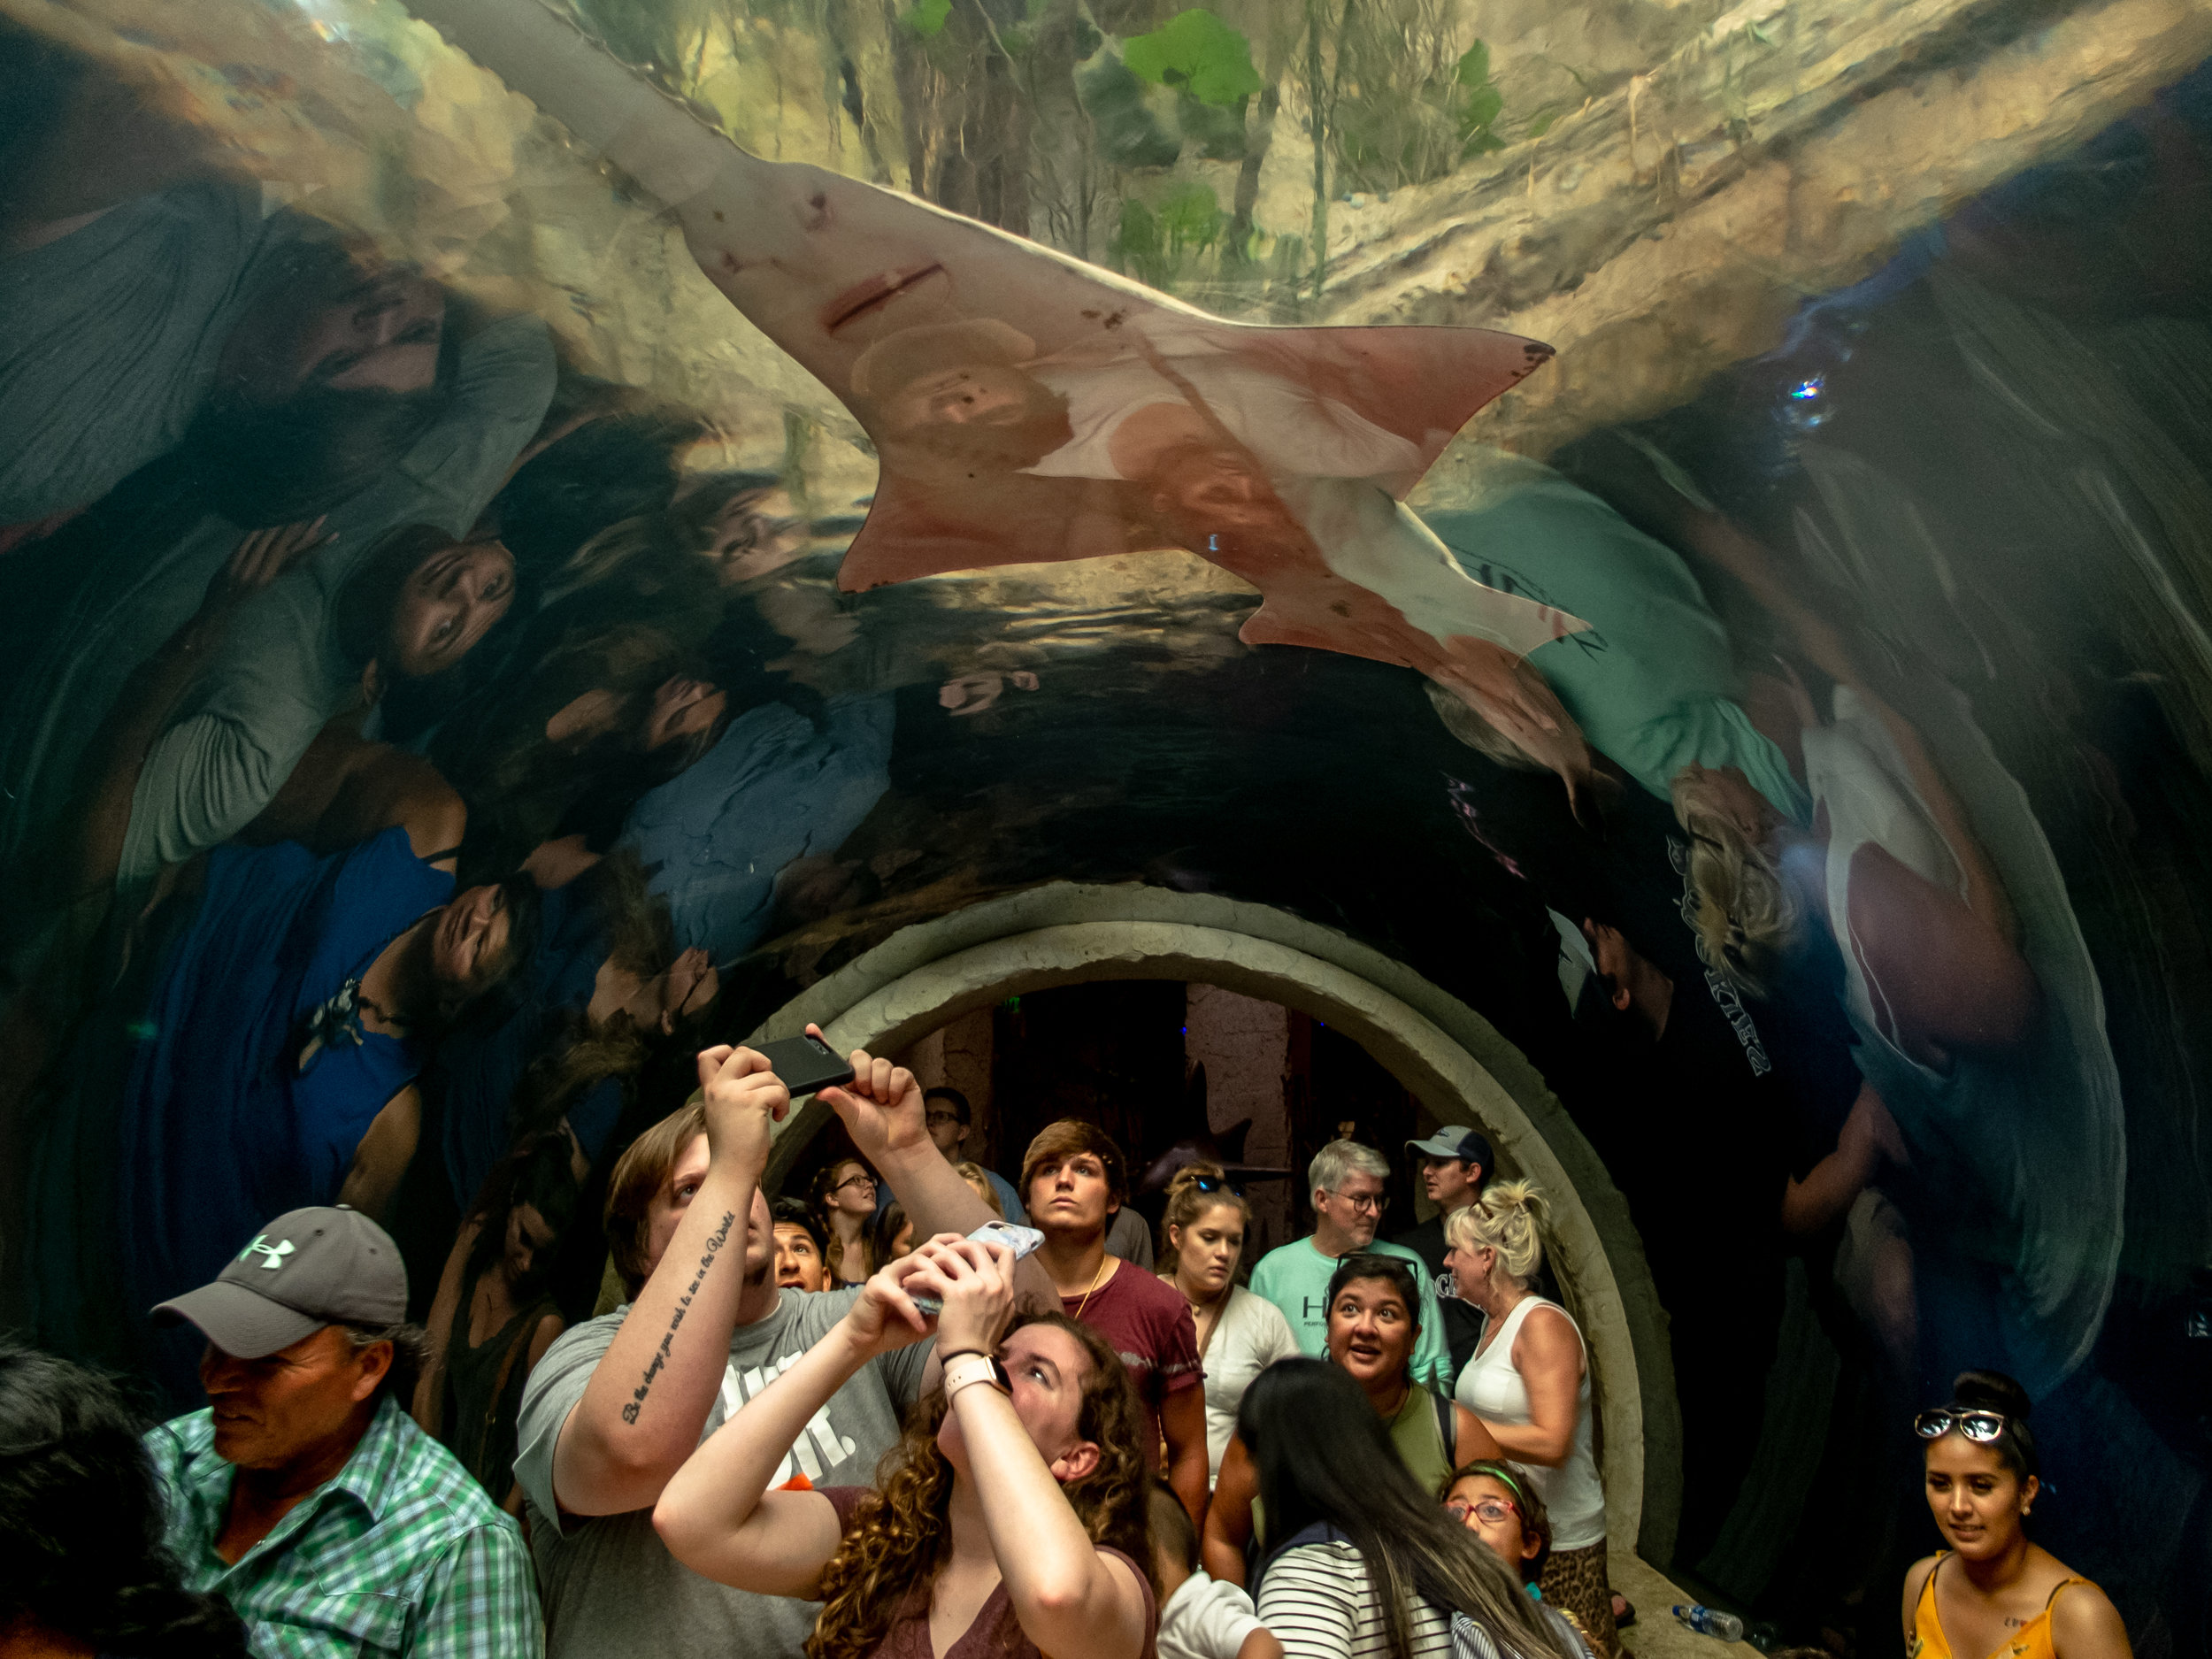 JULY 27, 2019 | VISITORS AT THE DALLAS AQUARIUM, LOOK ABOVE TO PHOTOGRAPH AND SEE A PRISTIOPHORIDAE, ALSO KNOWN AS A SAW-SHARK.